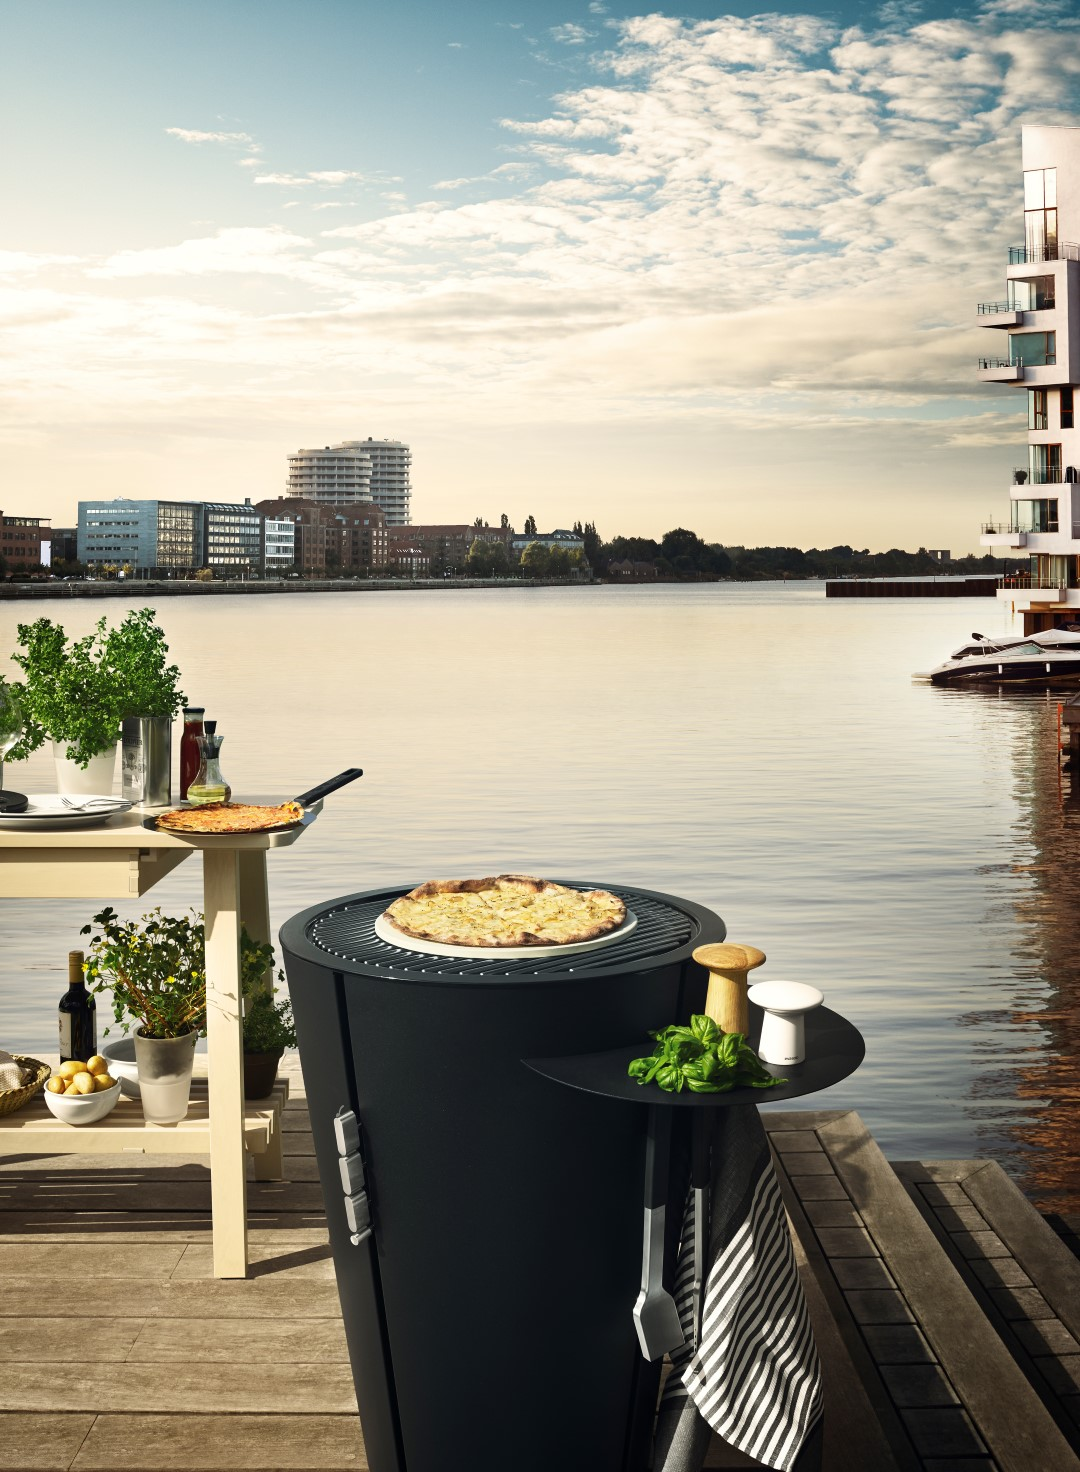 barbecue on decking by water